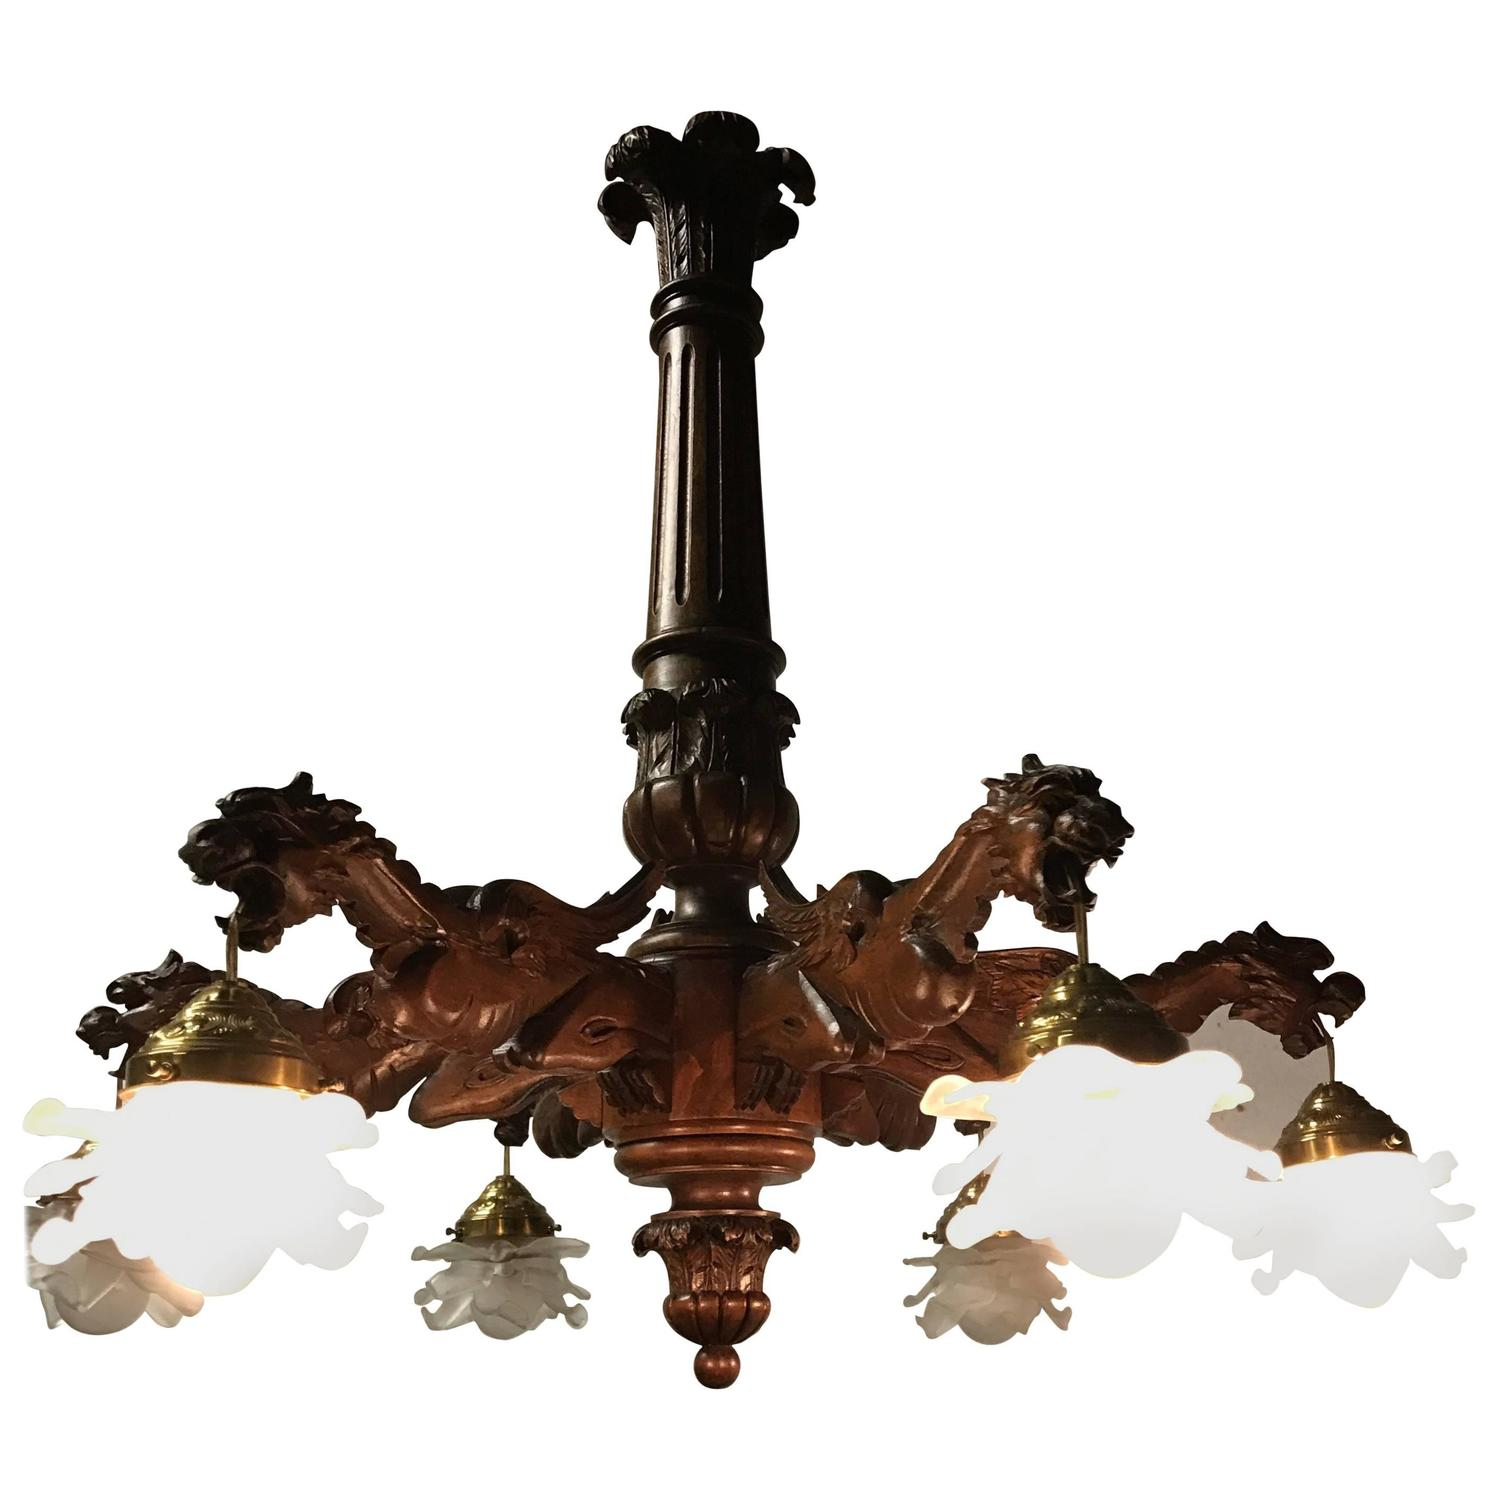 Six Light Gothic Form Reclaimed Wood Chandelier For Sale at 1stdibs